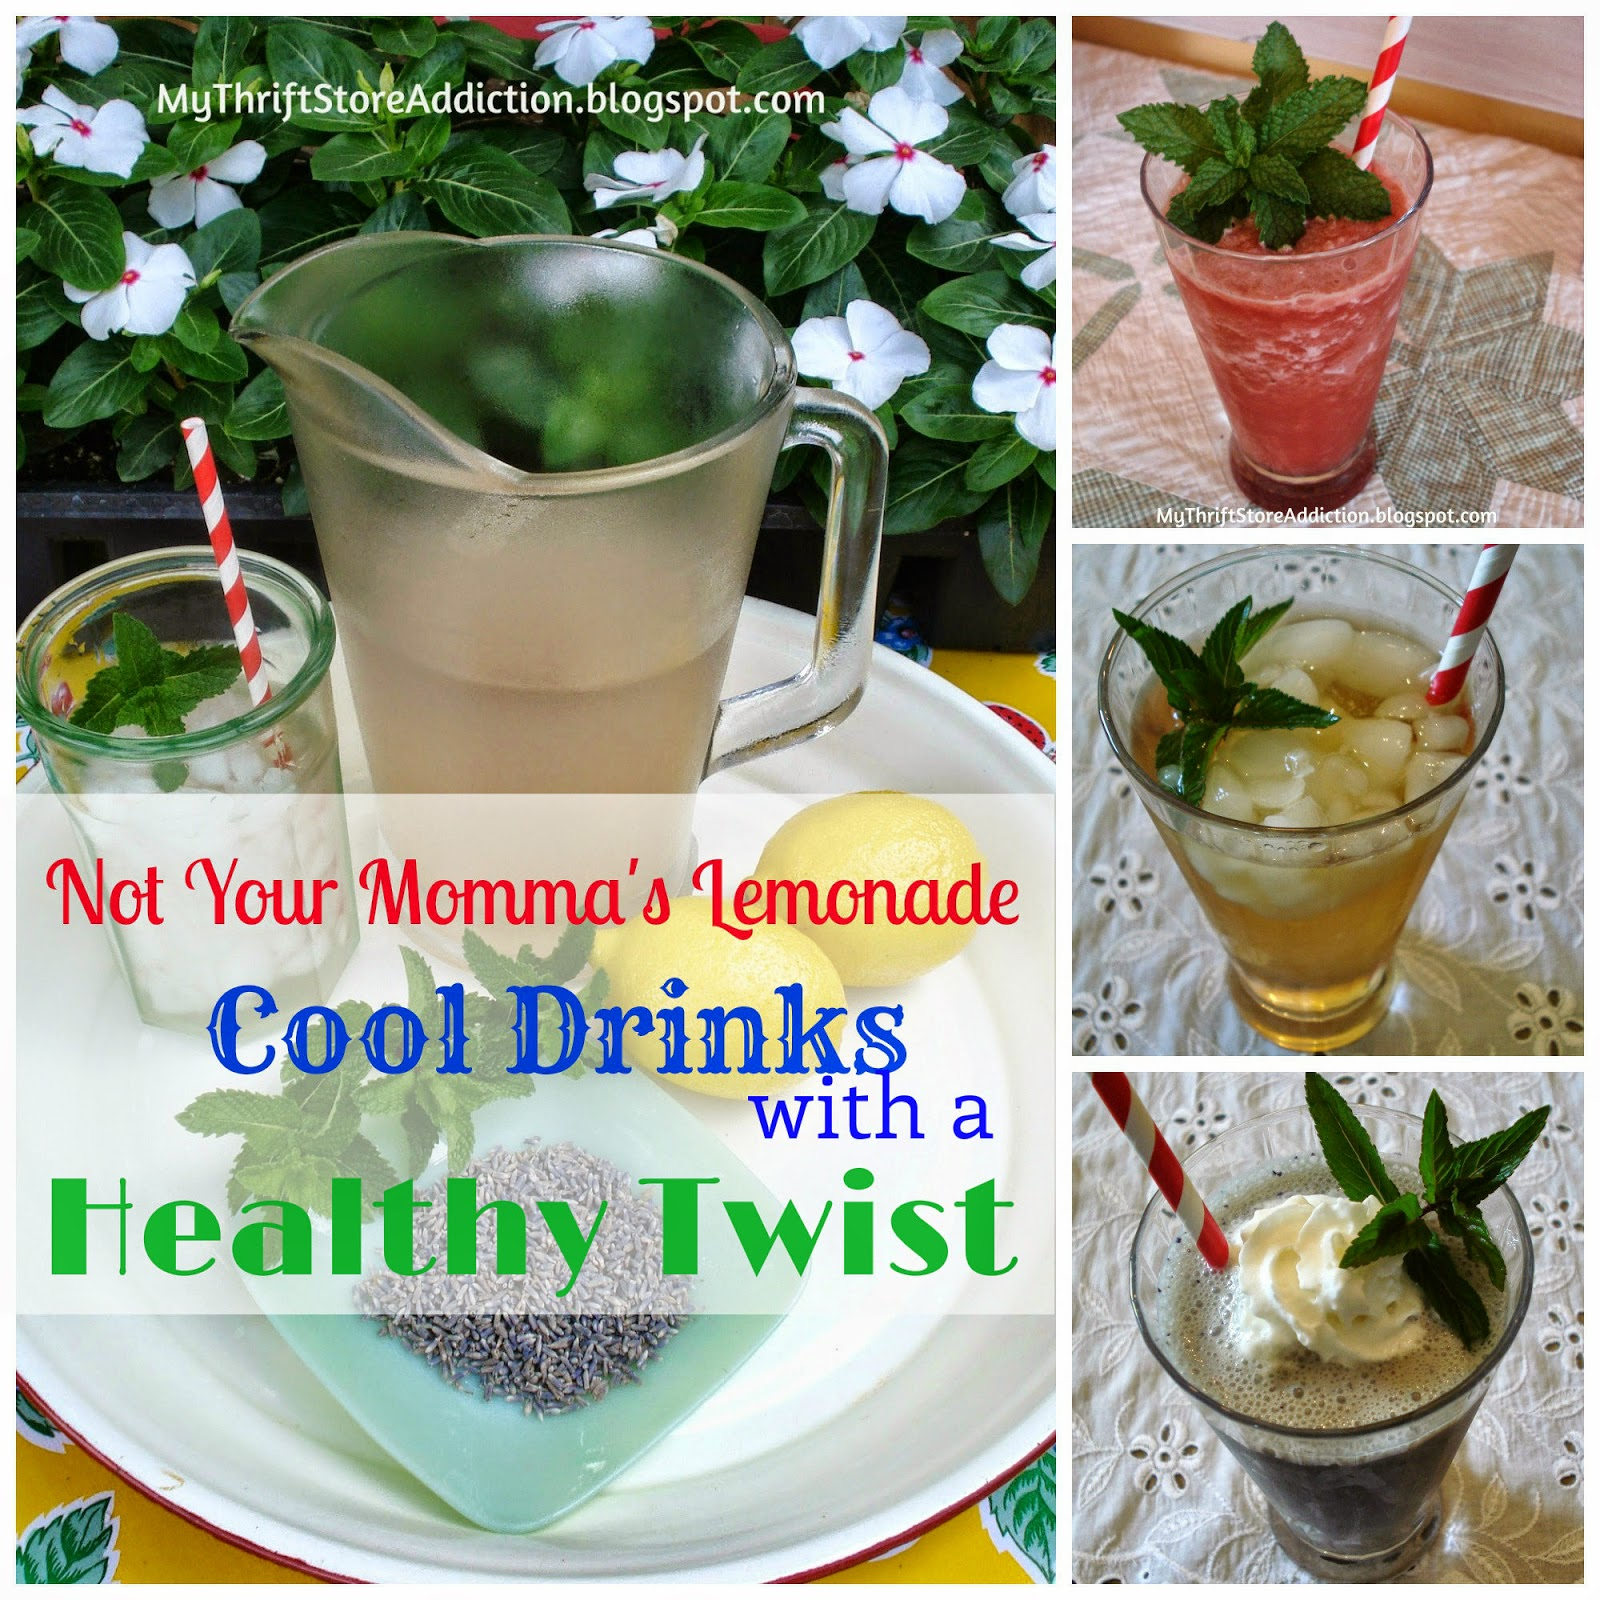 Healthy drink recipes